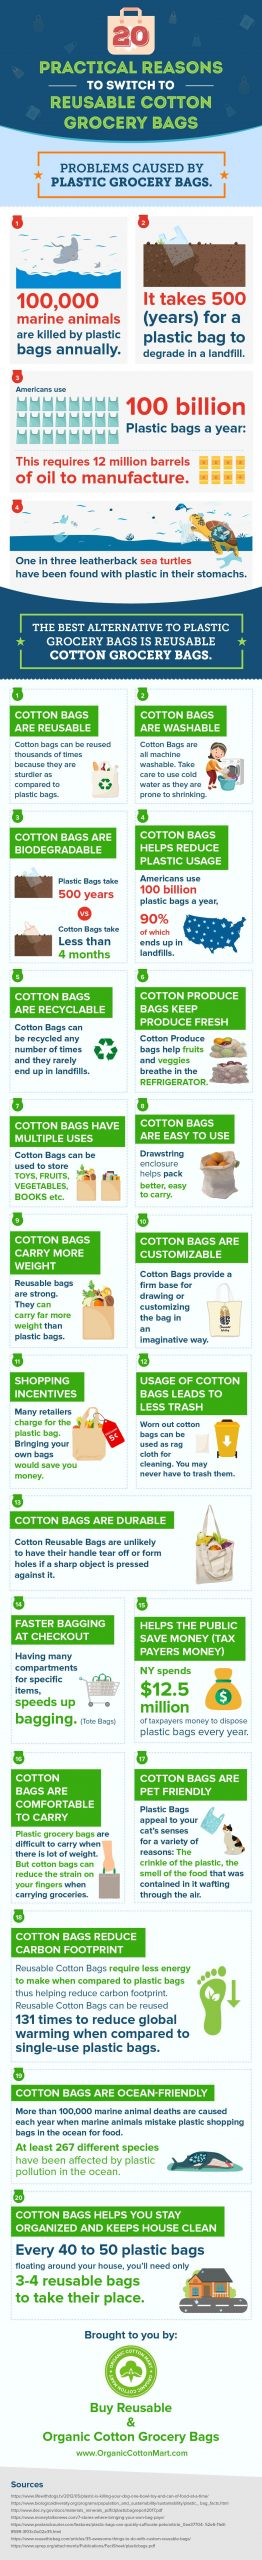 Reasons-To-Replace-Plastic-Bags-With-Cotton-Reusable-Bags-scaled